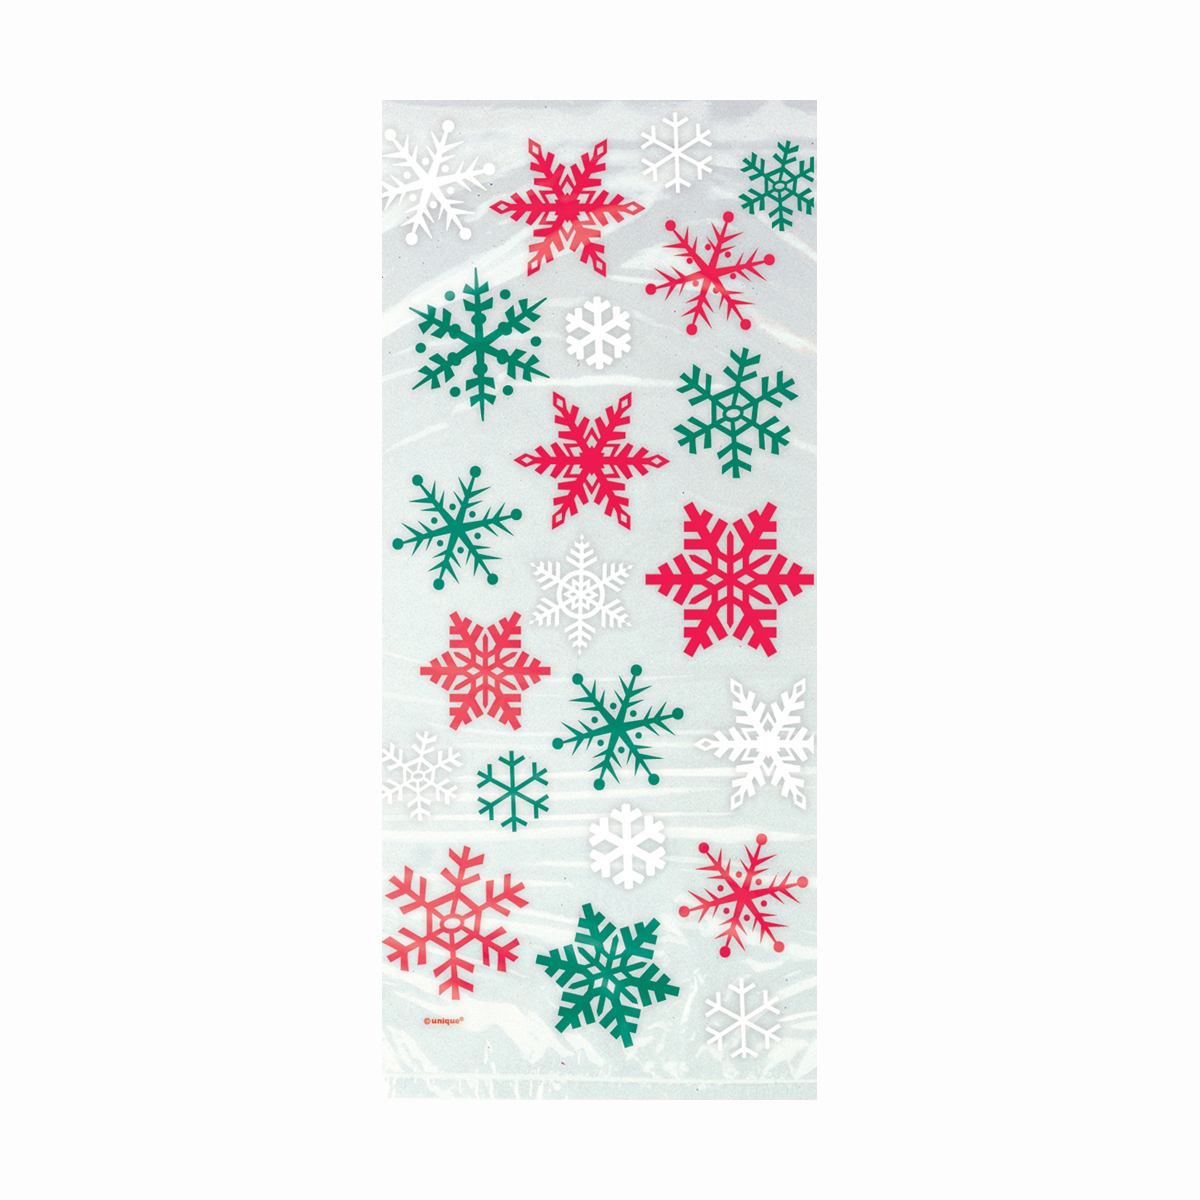 Snowflake Christmas Cellophane Bags, 11 x 5 in, Red & Green, 20ct